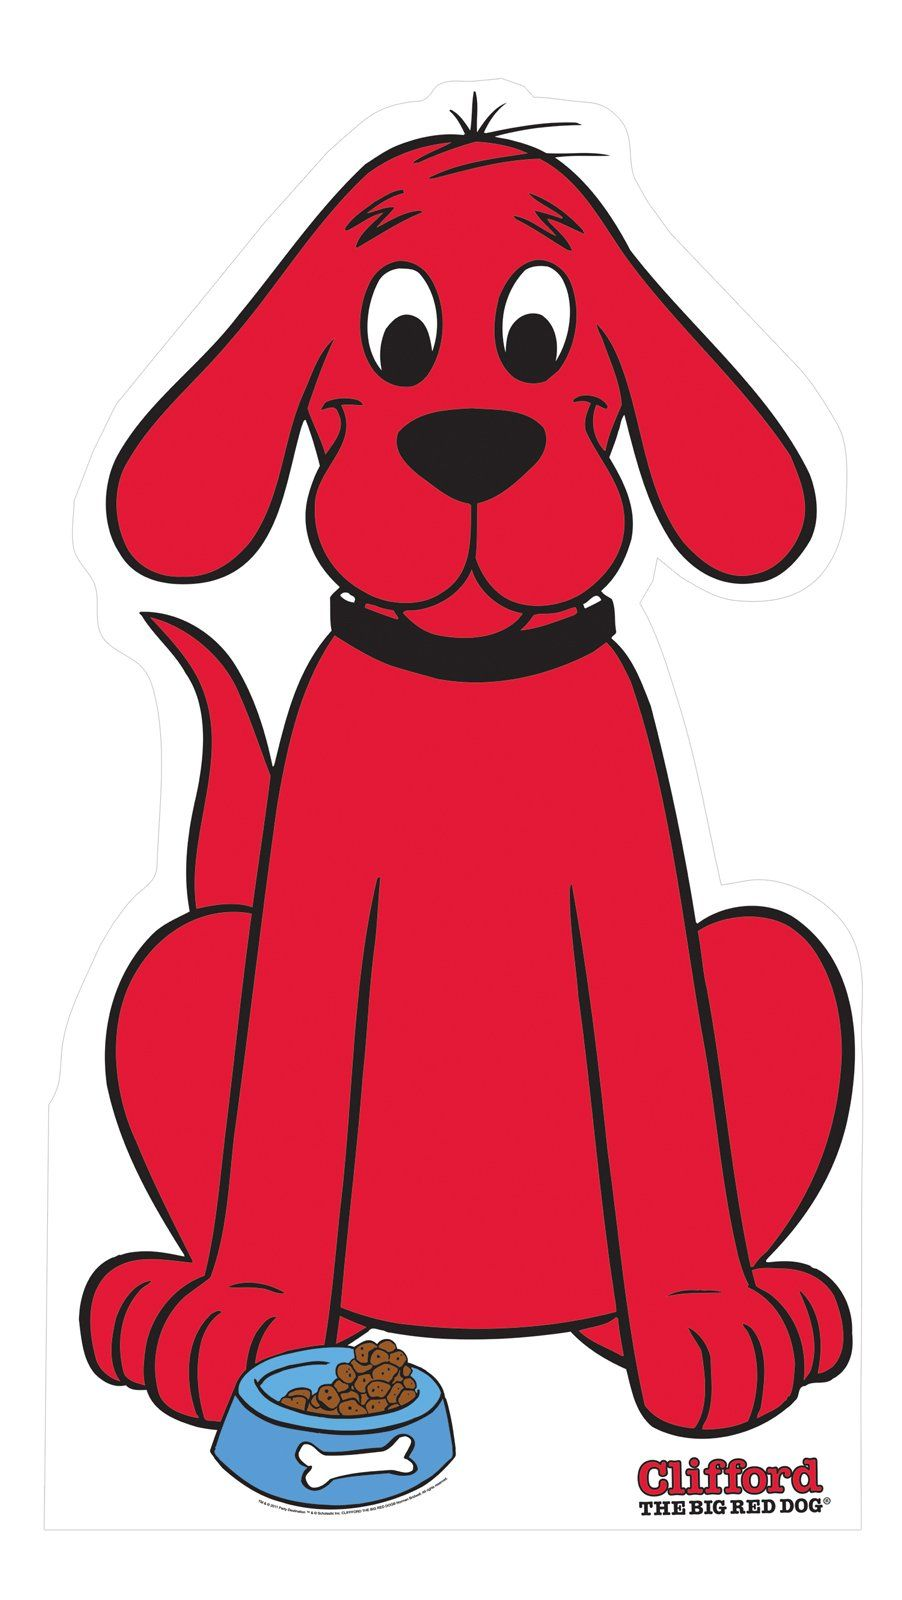 Clifford The Big Red Dog.